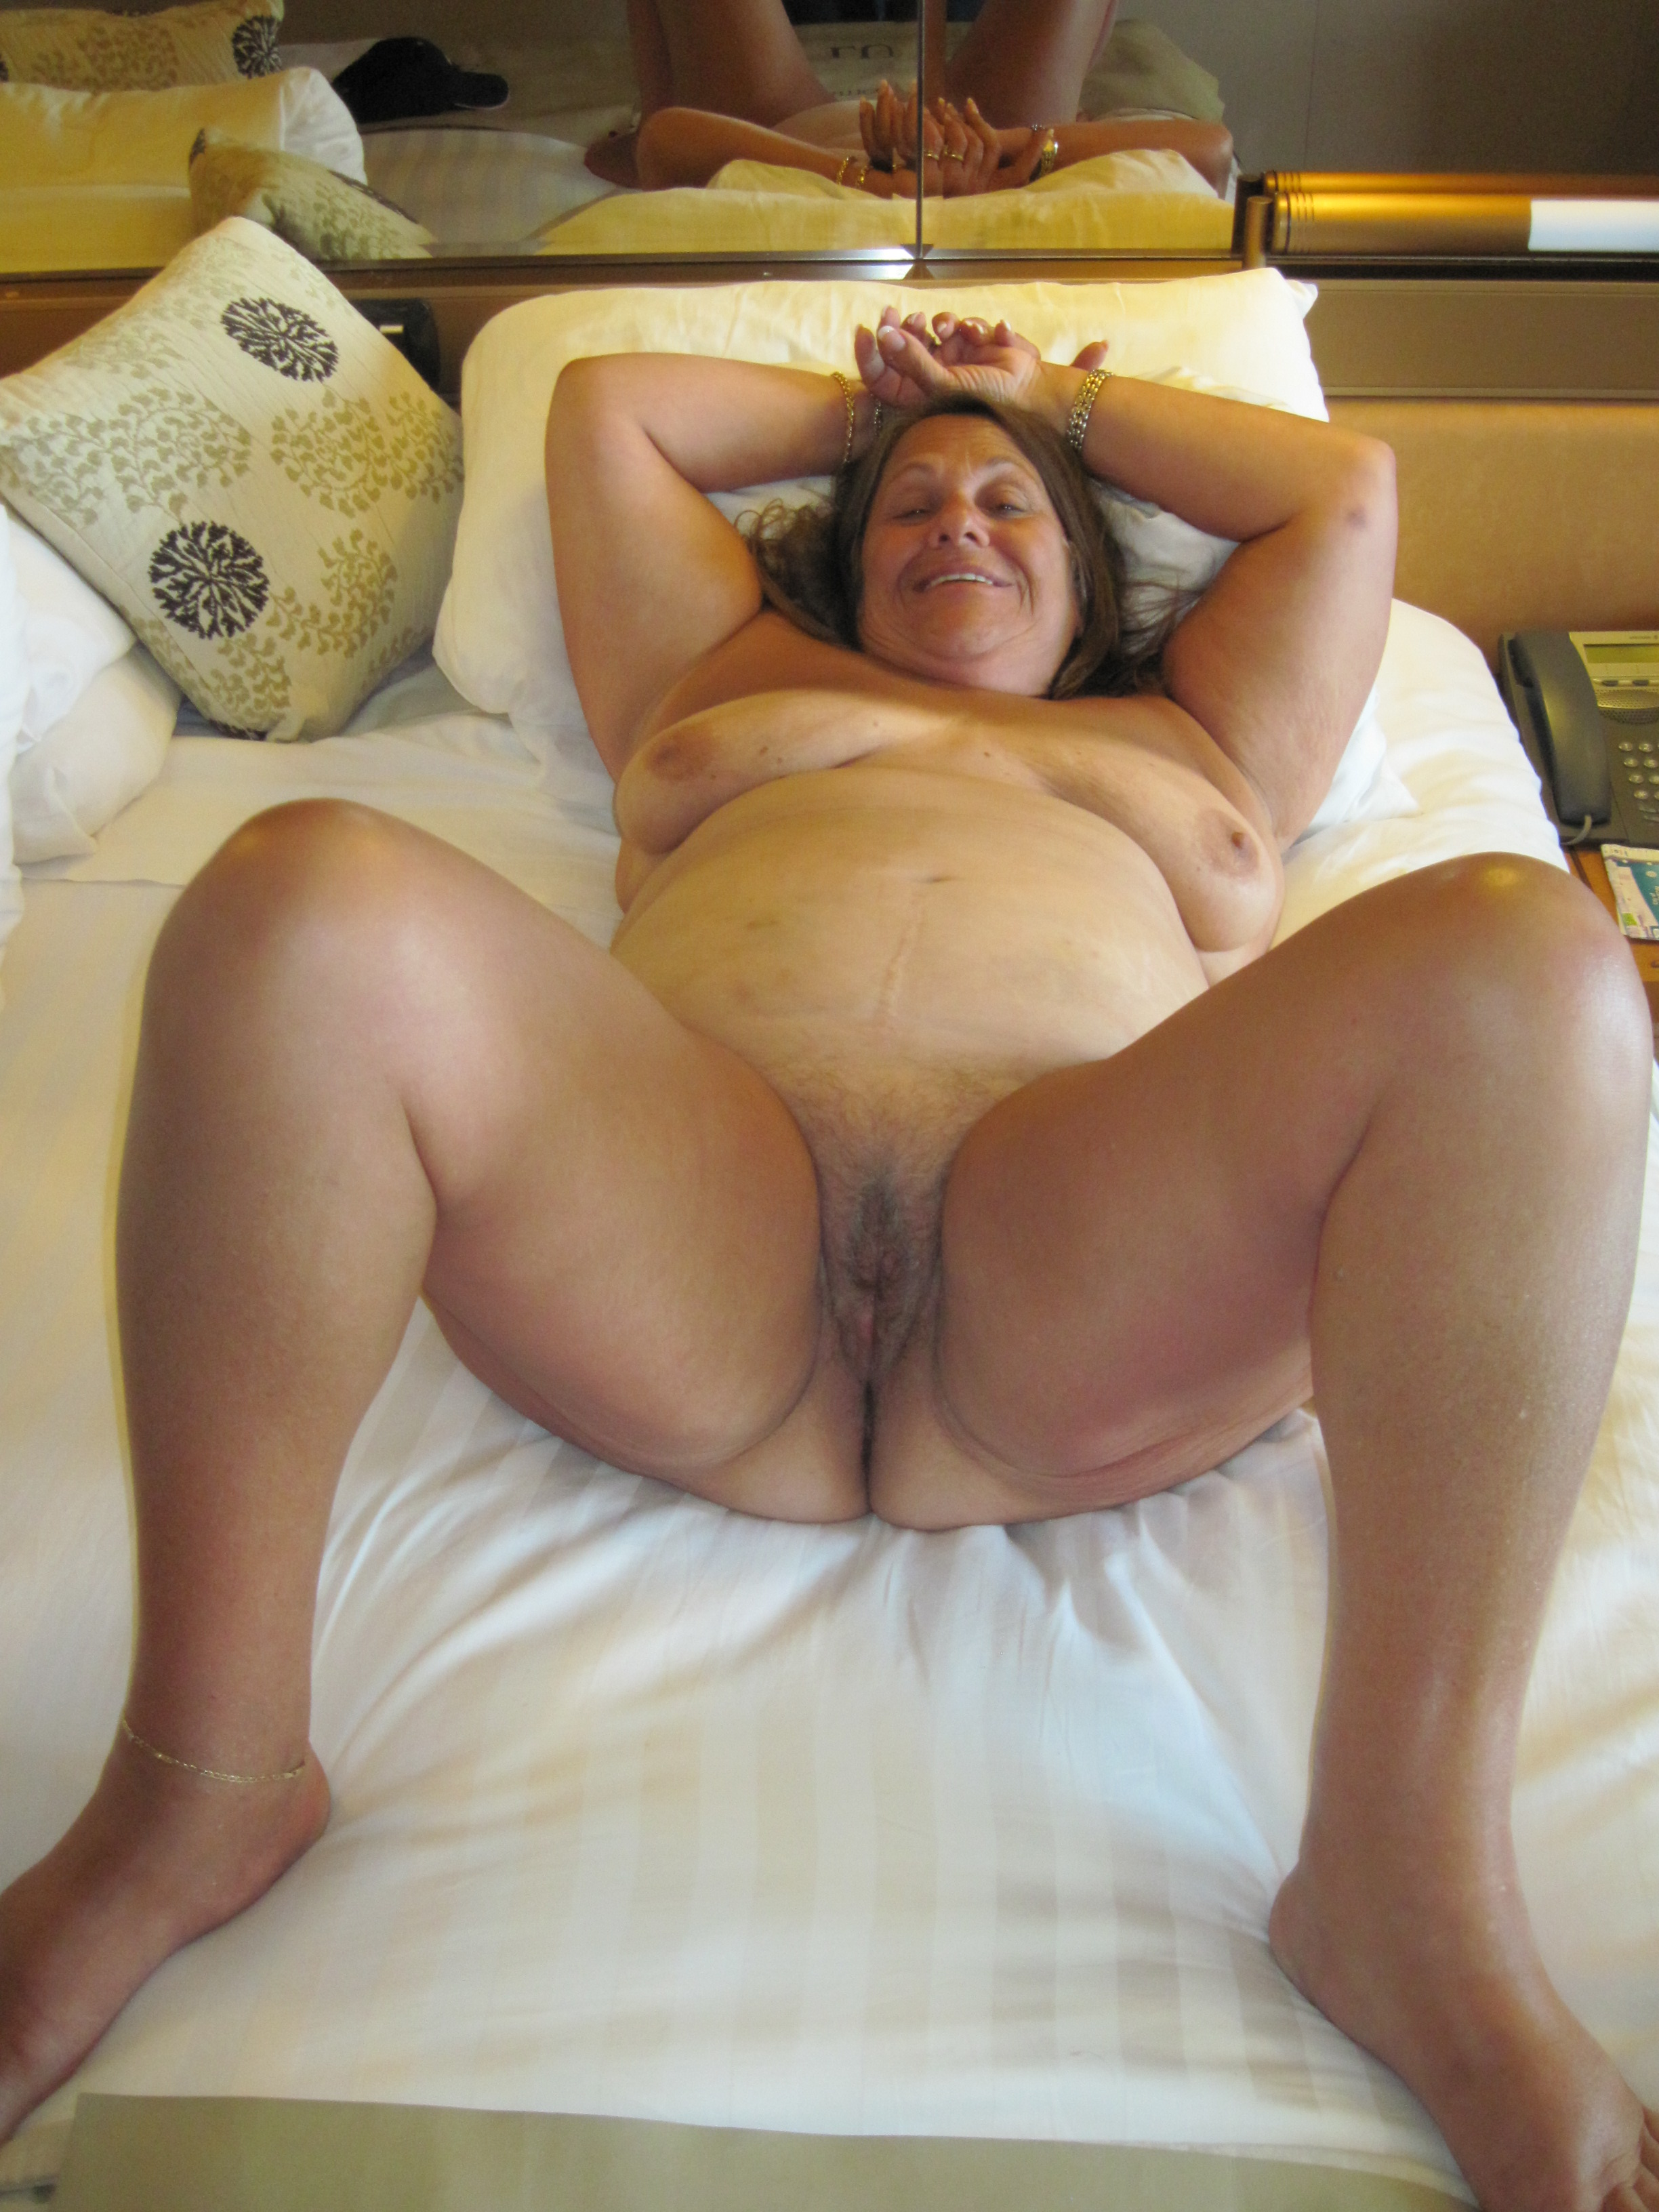 Chubby housewife mature nude join